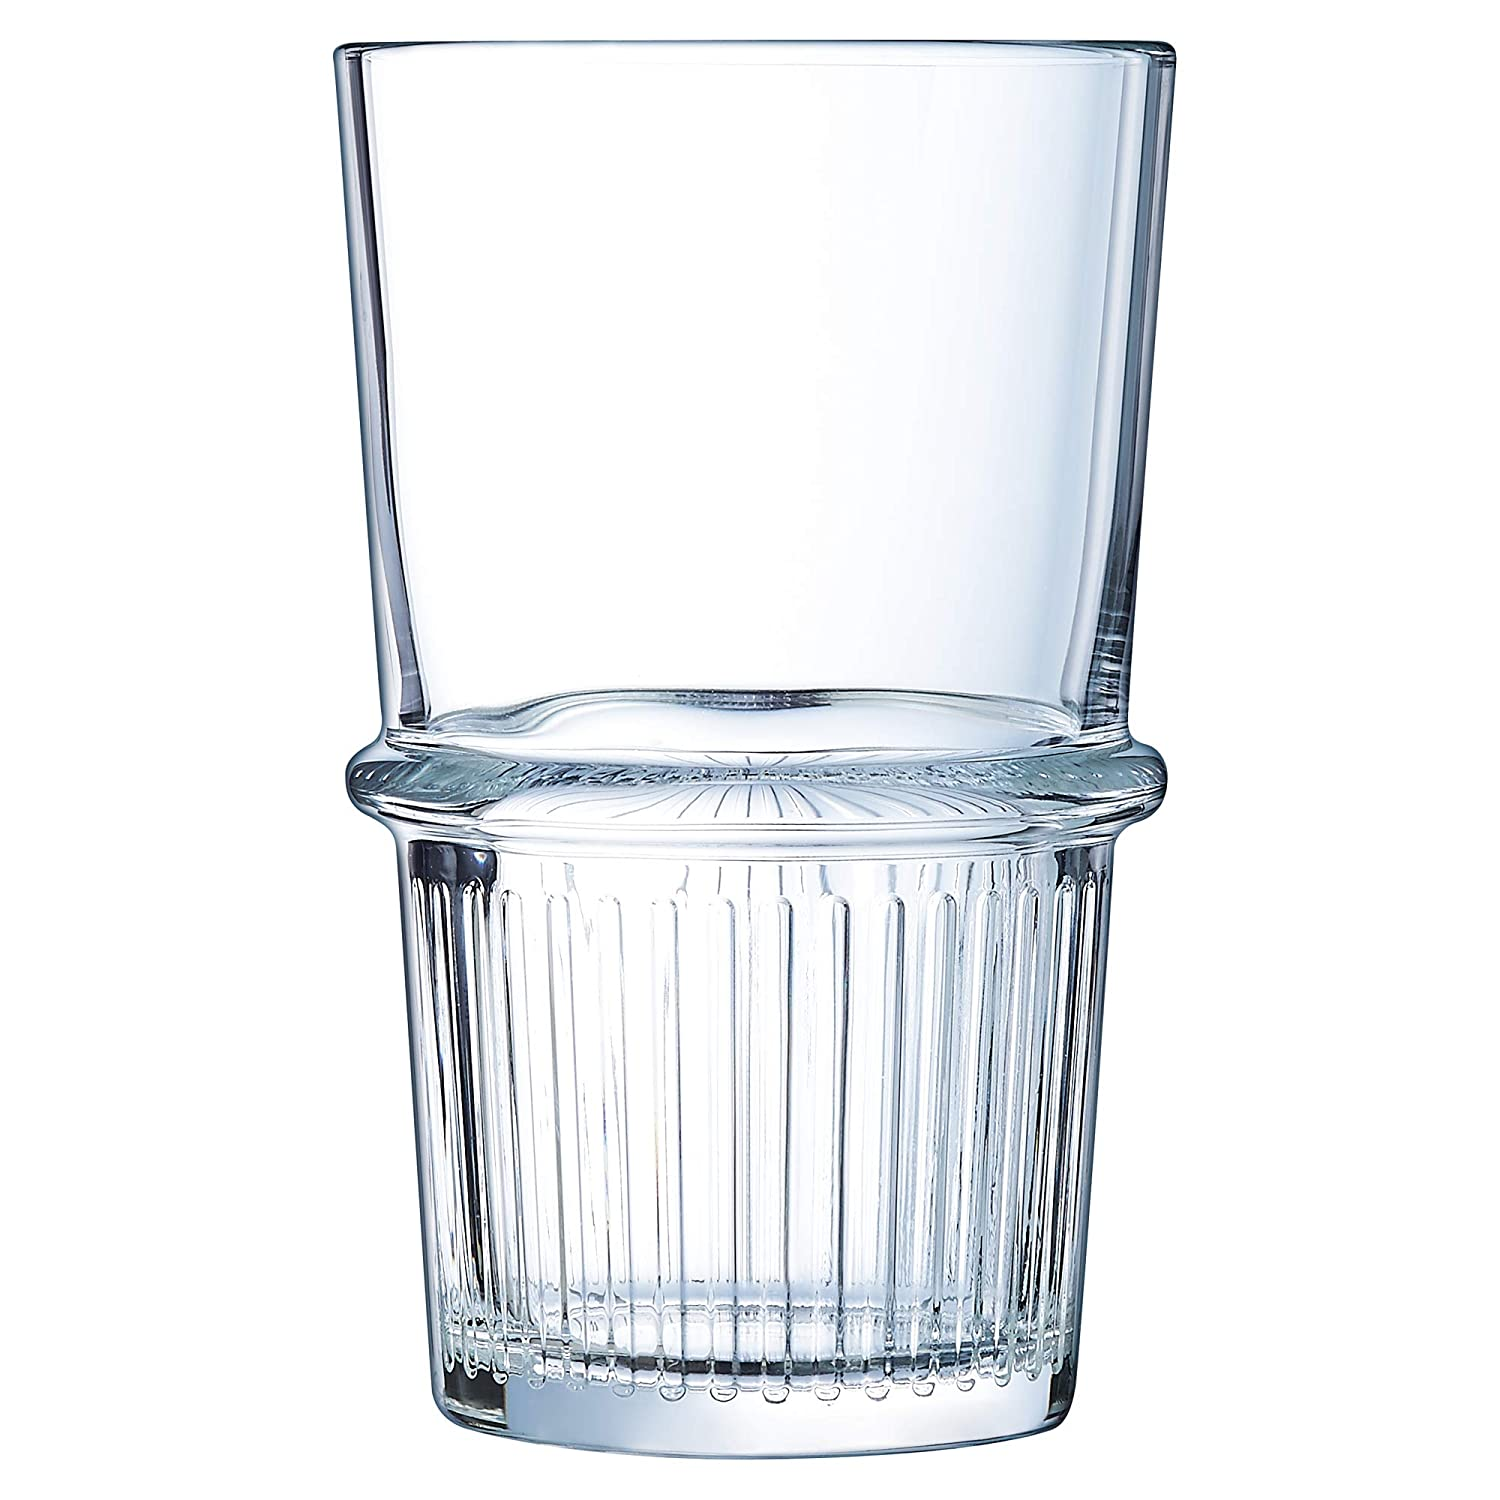 New York Tubo Hiball Tumblers 16oz 470ml Pack of 6 Fully Tempered Hiball Glasses from Arcoroc